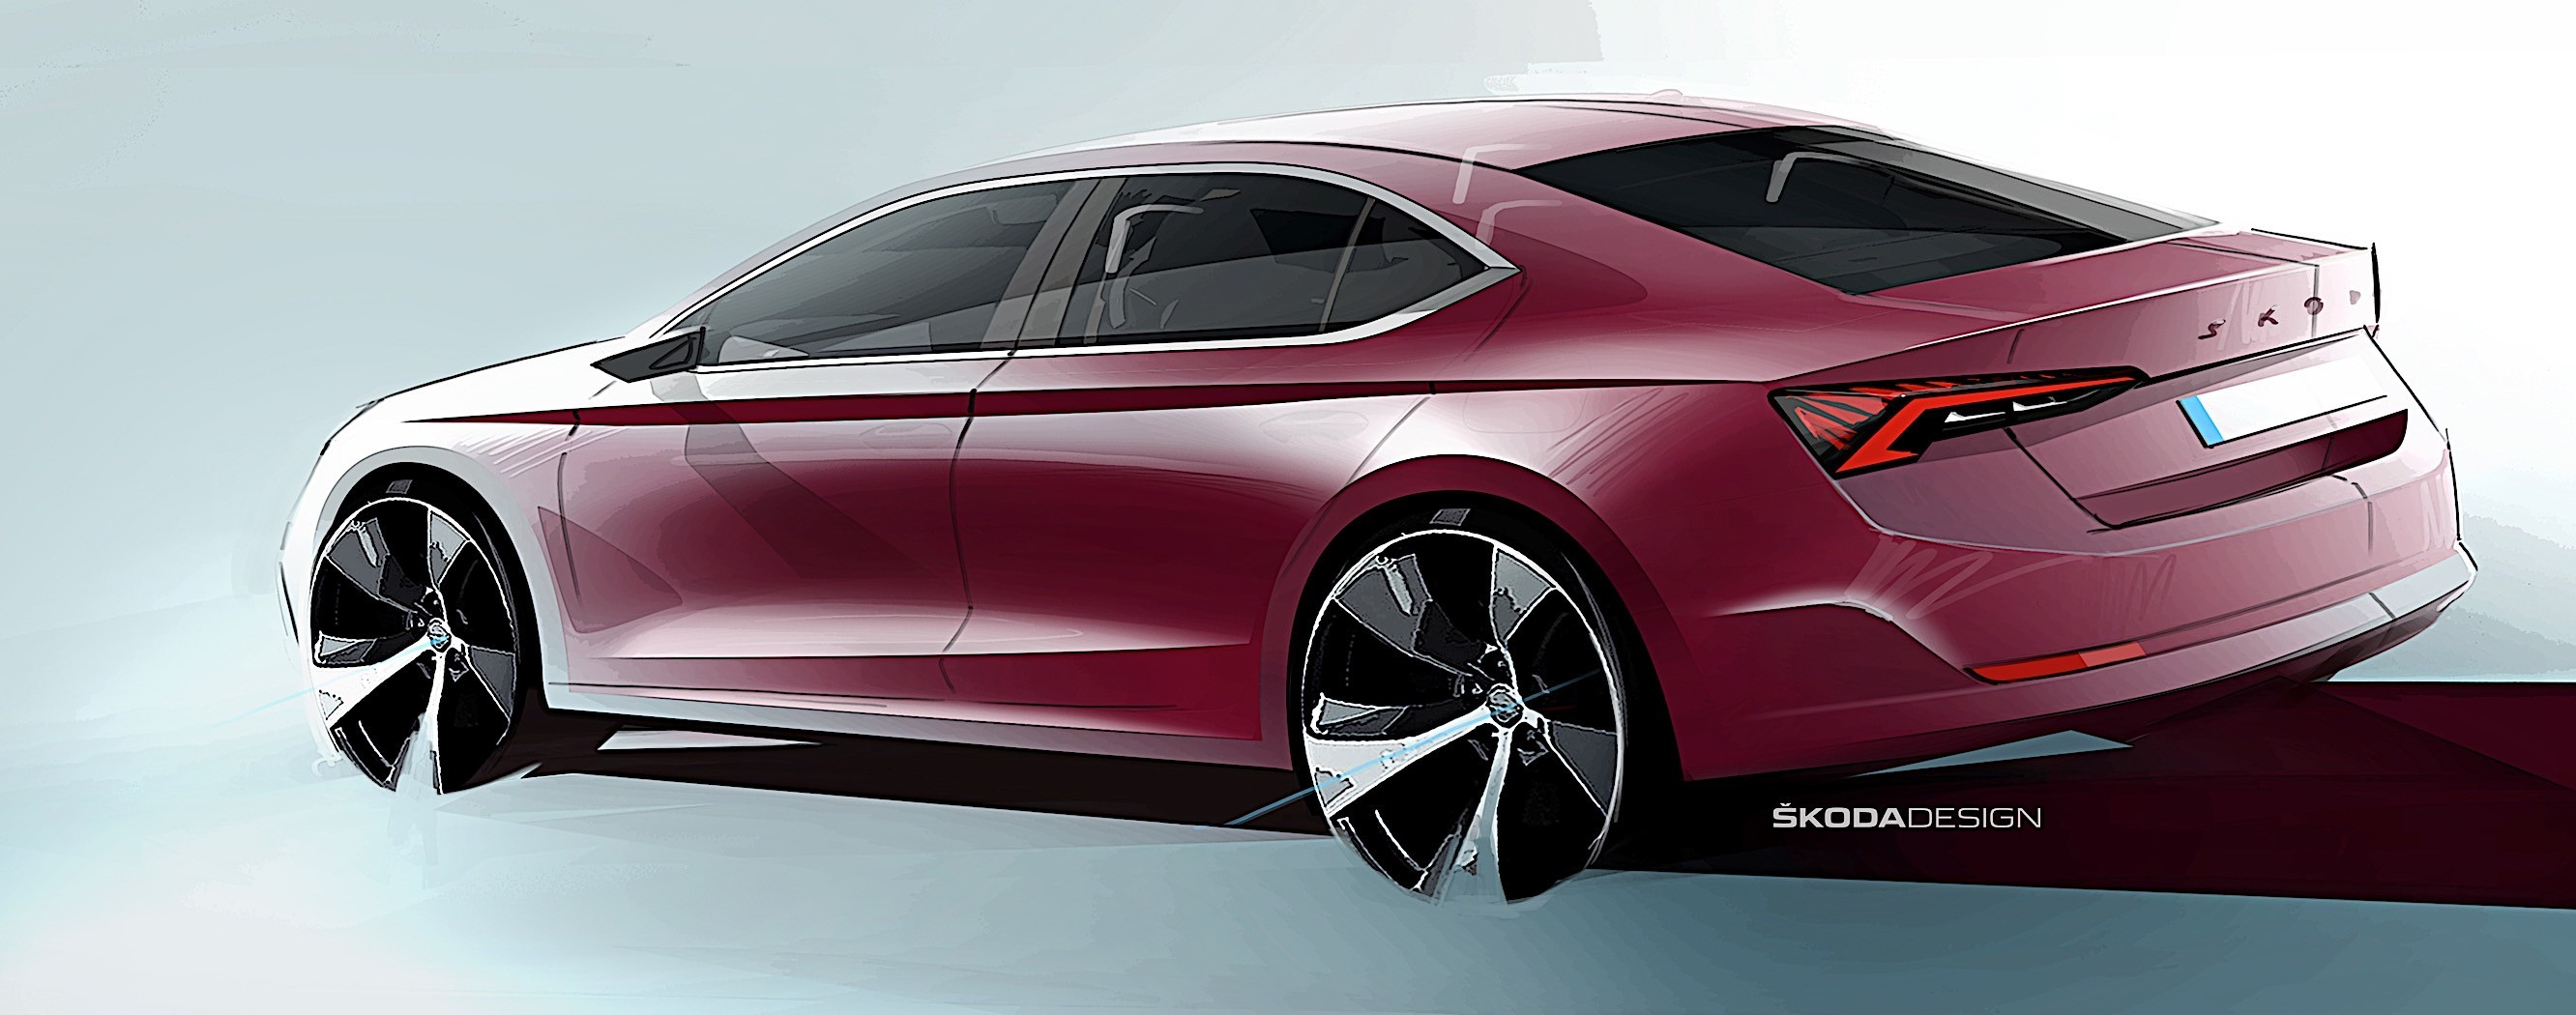 2020 Skoda Octavia Shows Up In First Official Sketches Debut Imminent Autoevolution